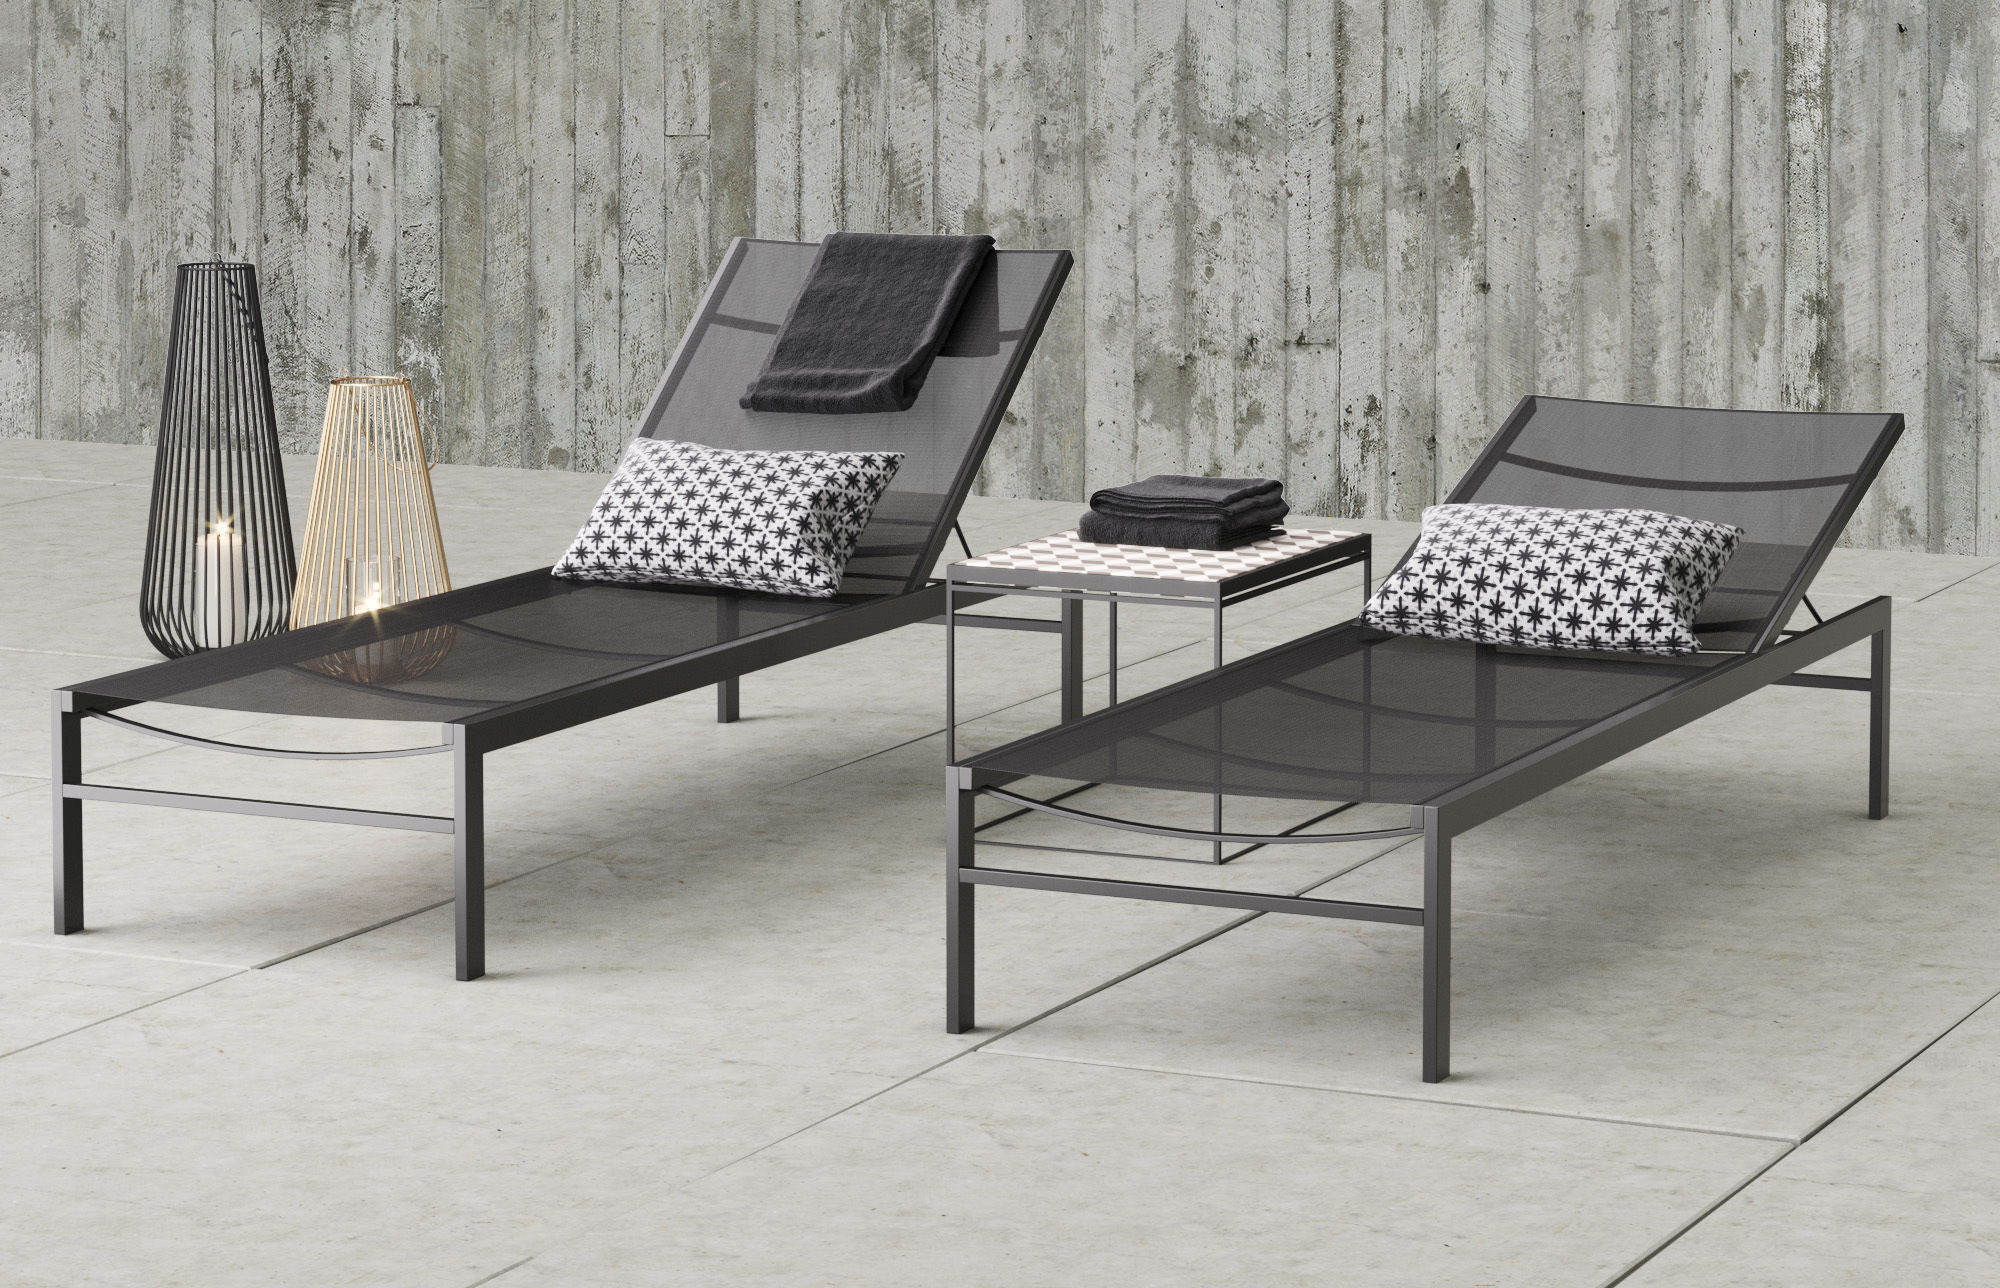 GQ and CB2 Launch Furniture and Home Goods Collab - Airows